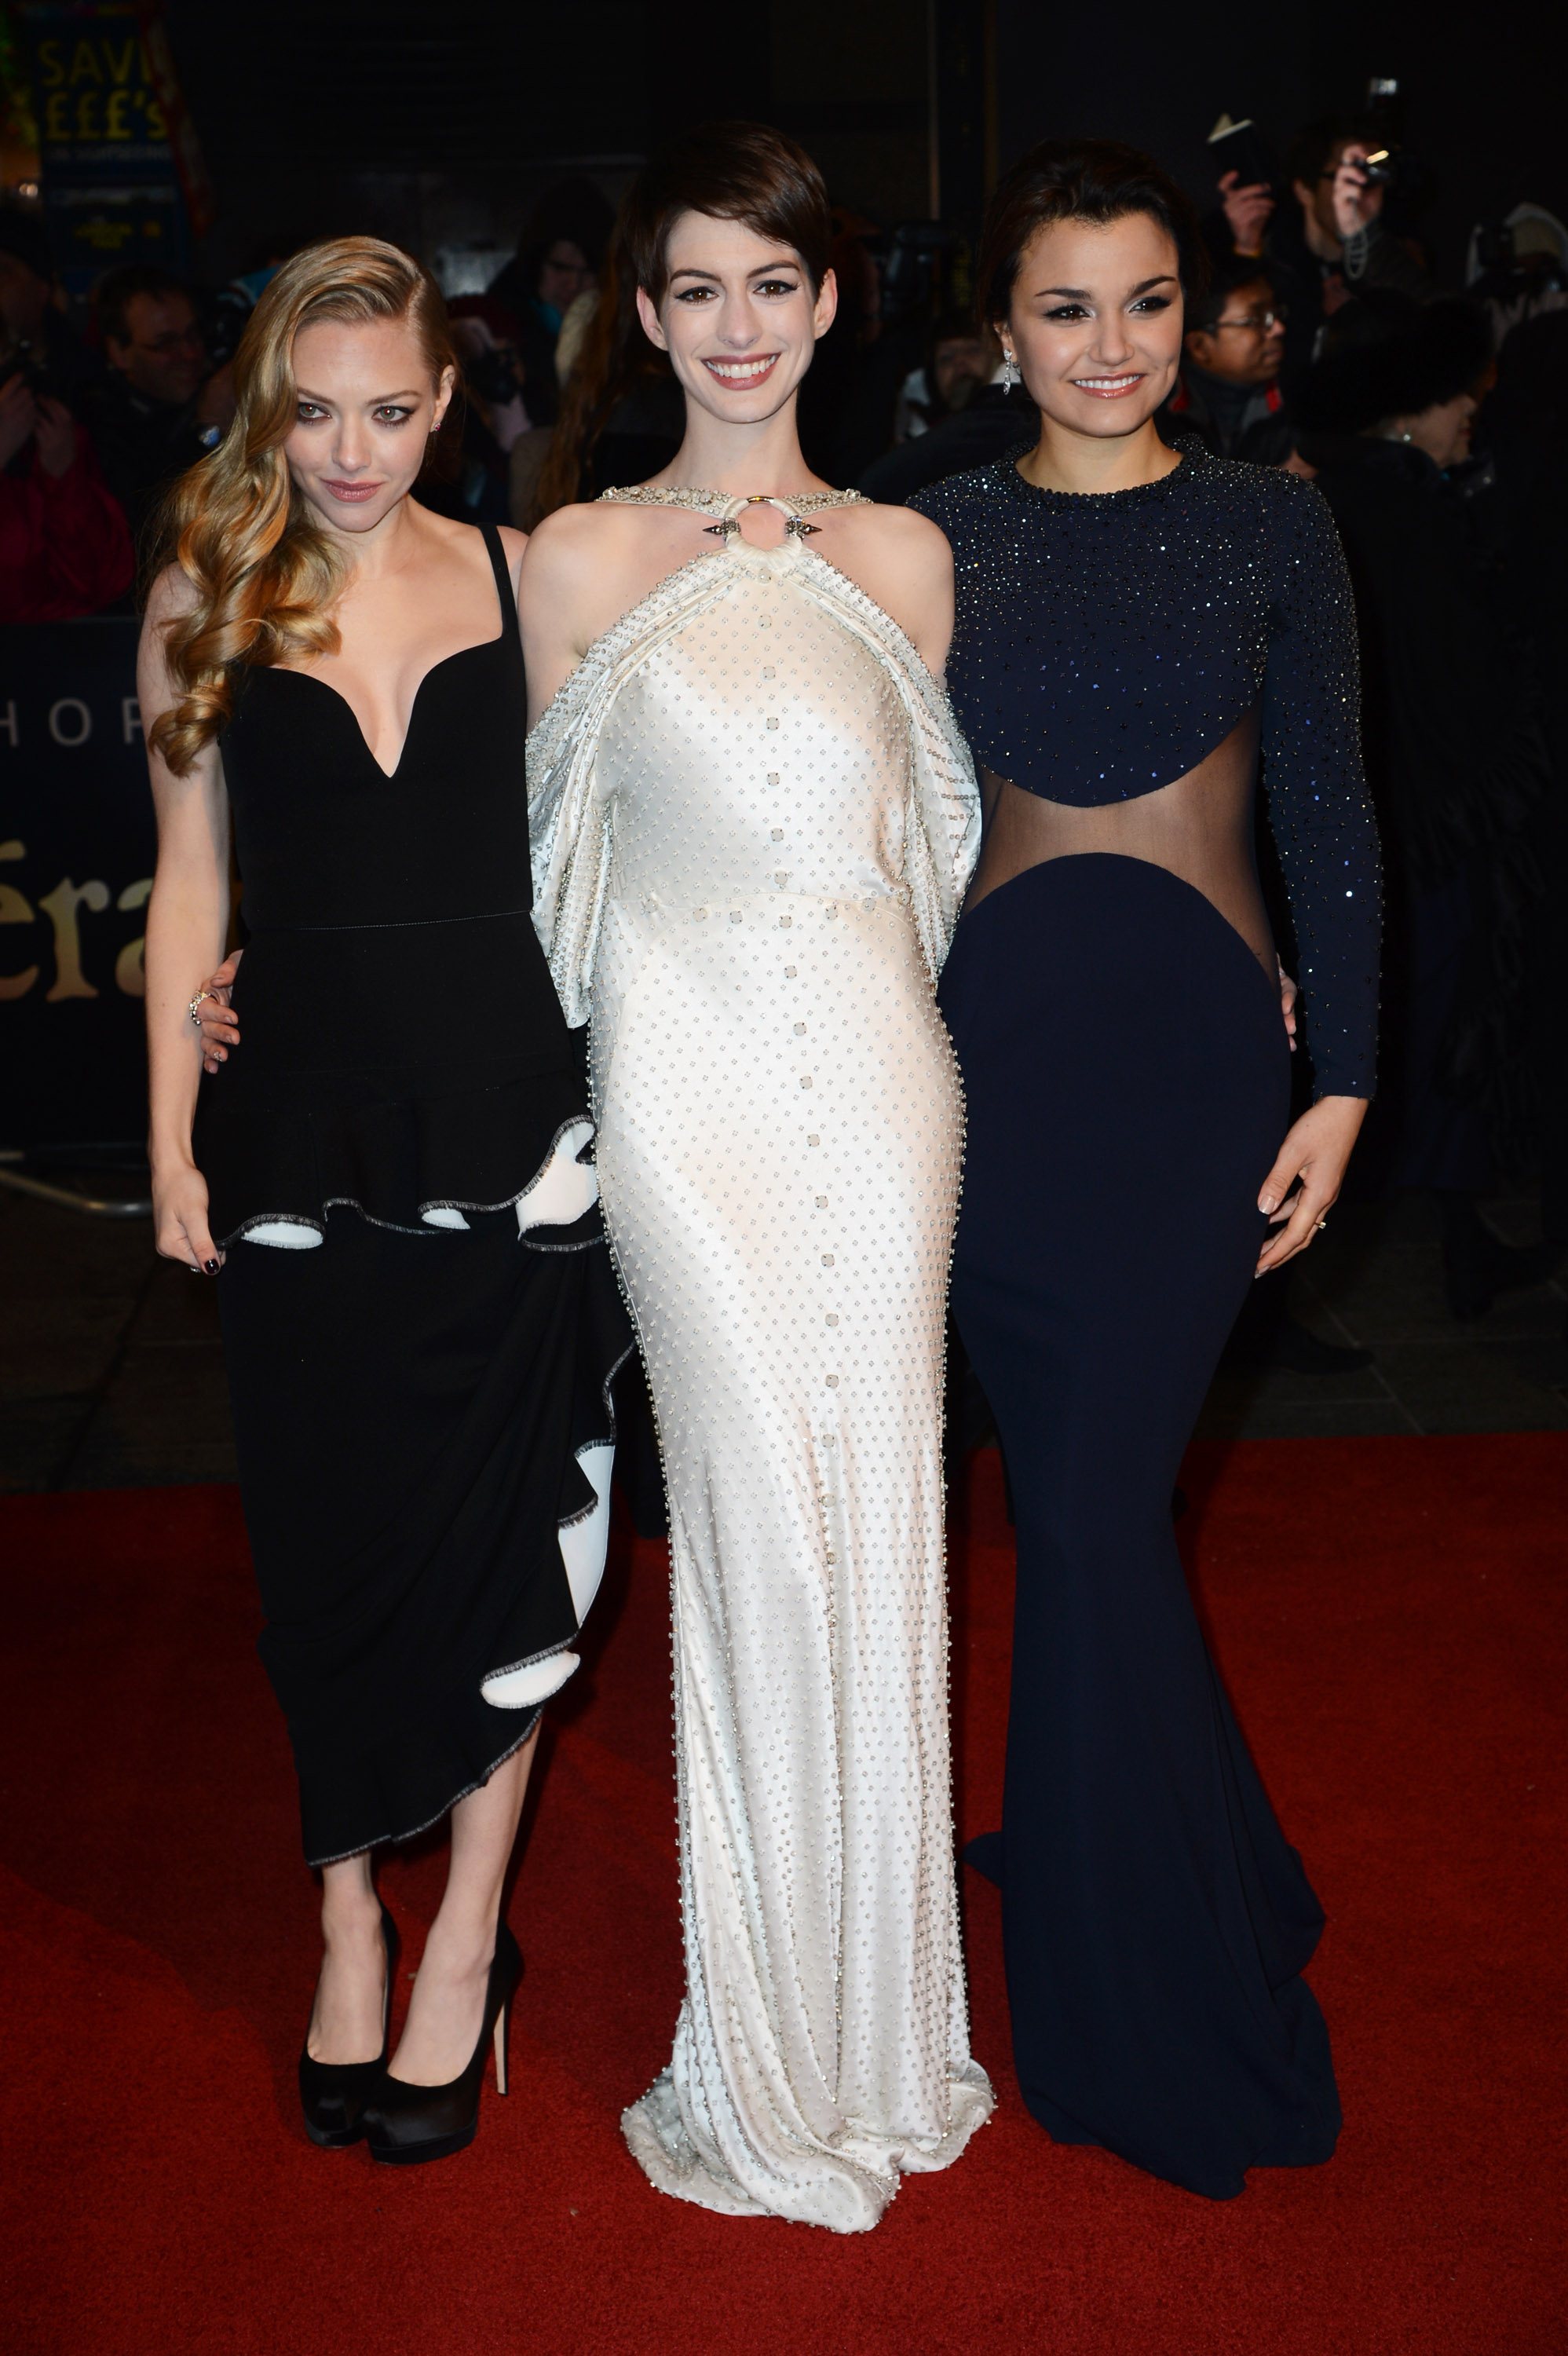 Anne Hathaway, Amanda Seyfried, and Samantha Barks attended the Les Miserables premiere in London.